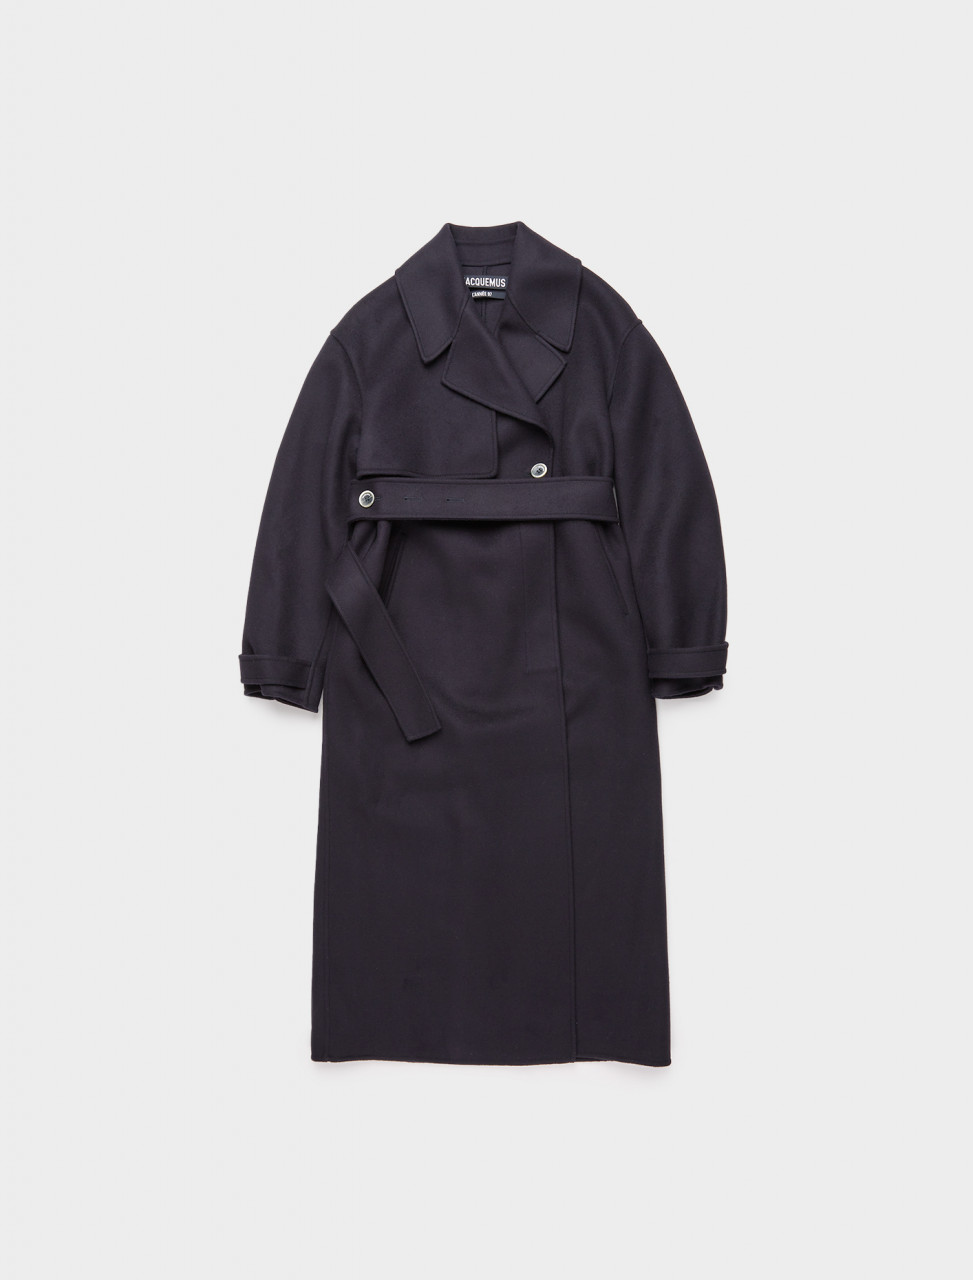 265-203CO04-203-111380 JACQUEMUS LA MANTEAU SABE NAVY